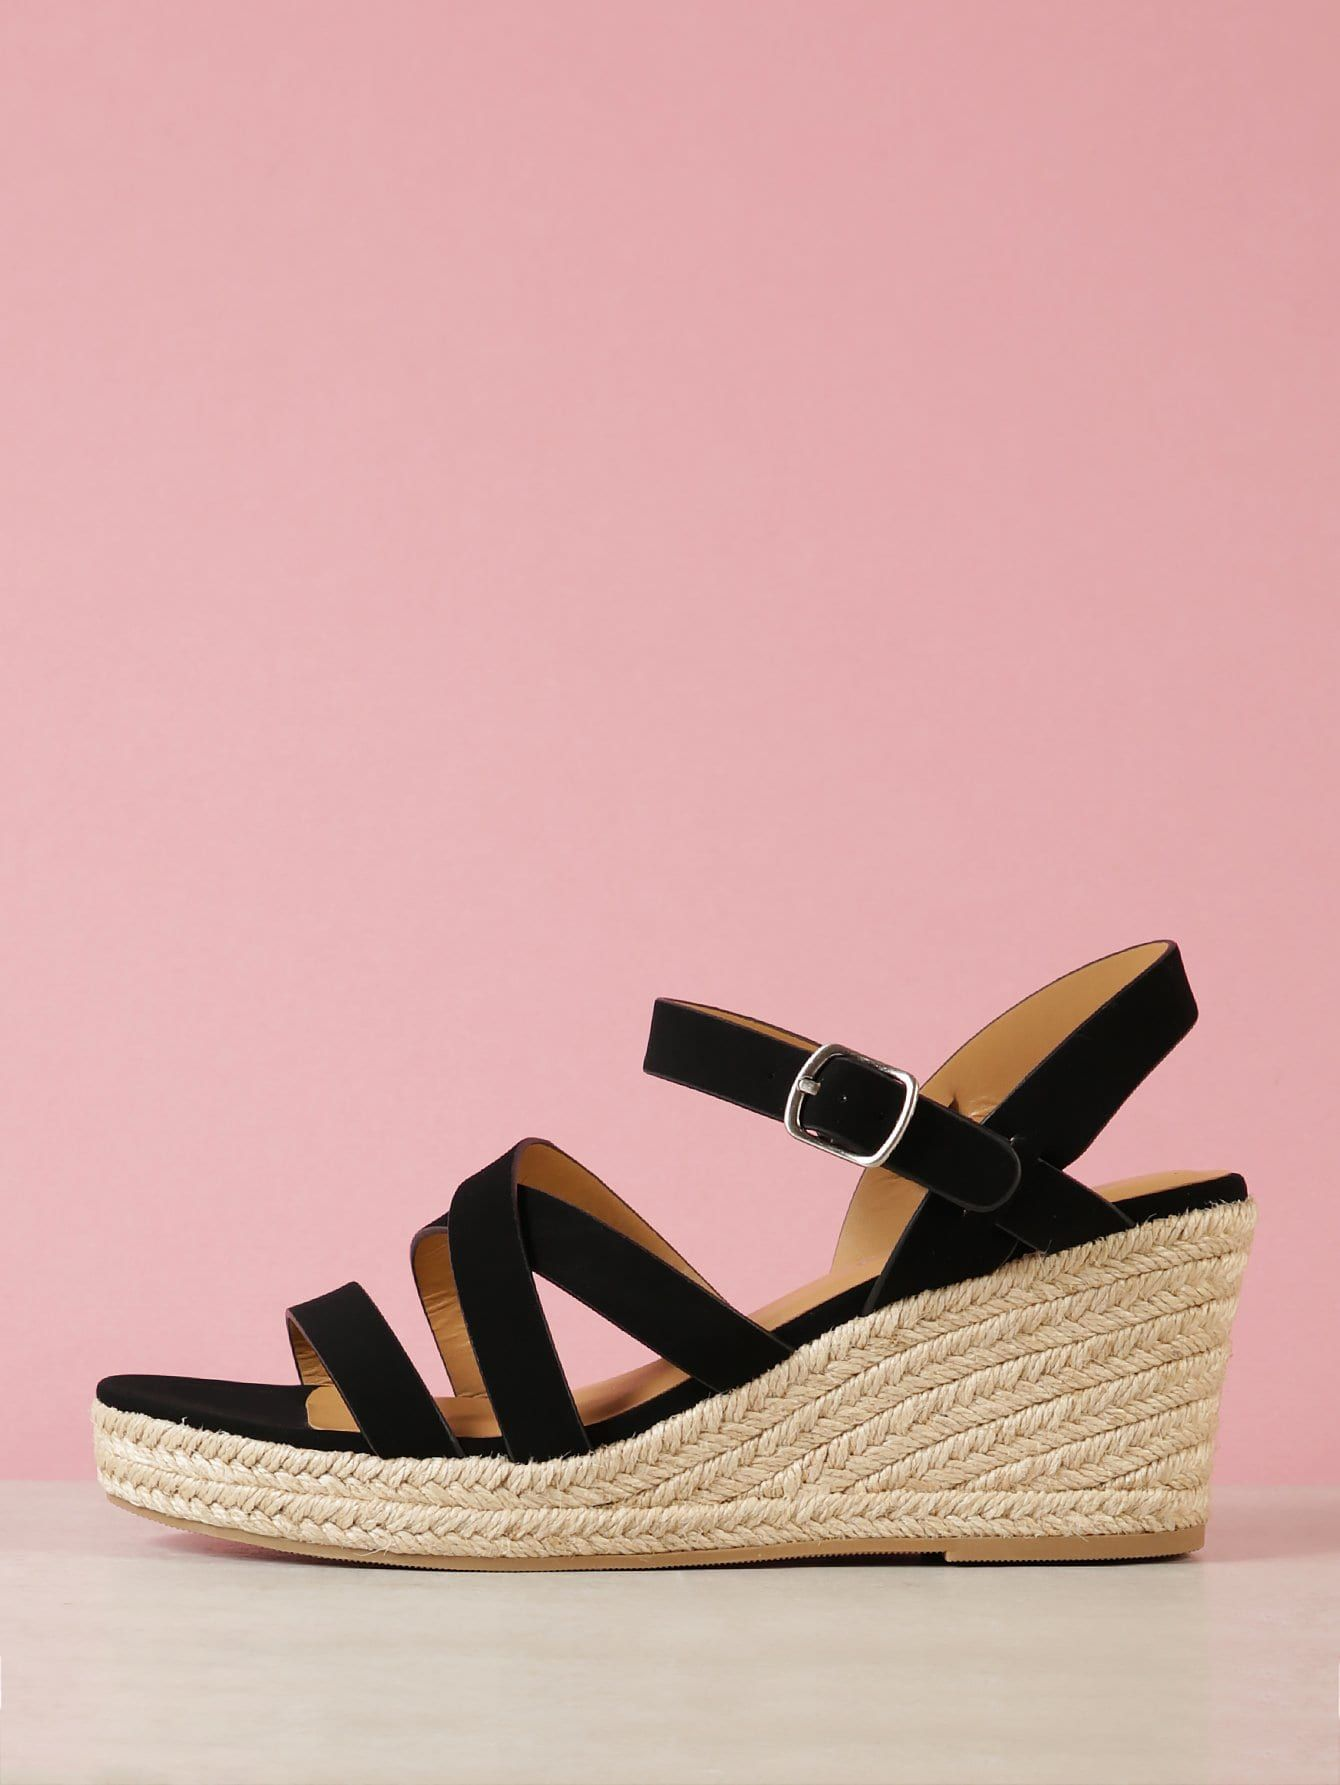 3008bd707e8 Elegant Peep Toe Strappy and Criss Cross Black High Heel Espadrille Strappy  Espadrille Platform Wedge Sandal